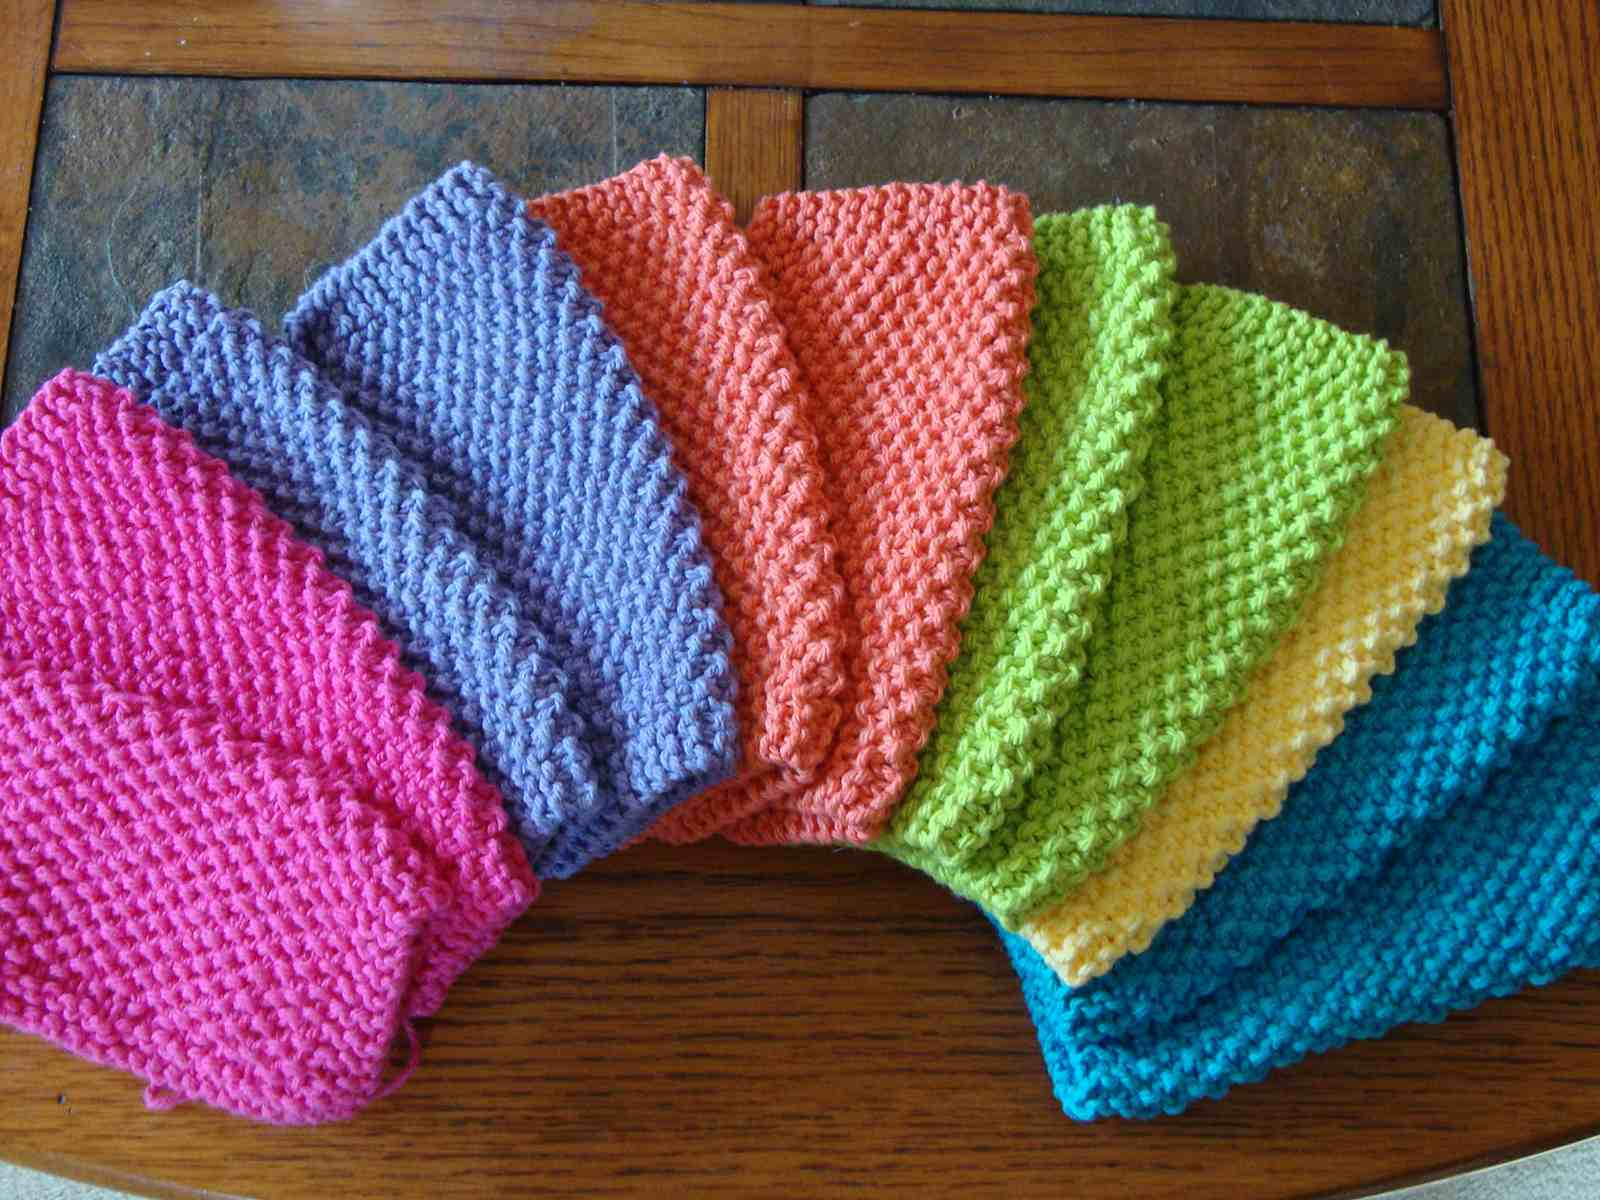 Easy Dishcloth Knit Pattern 10 Knit Dishcloth Patterns For Beginners